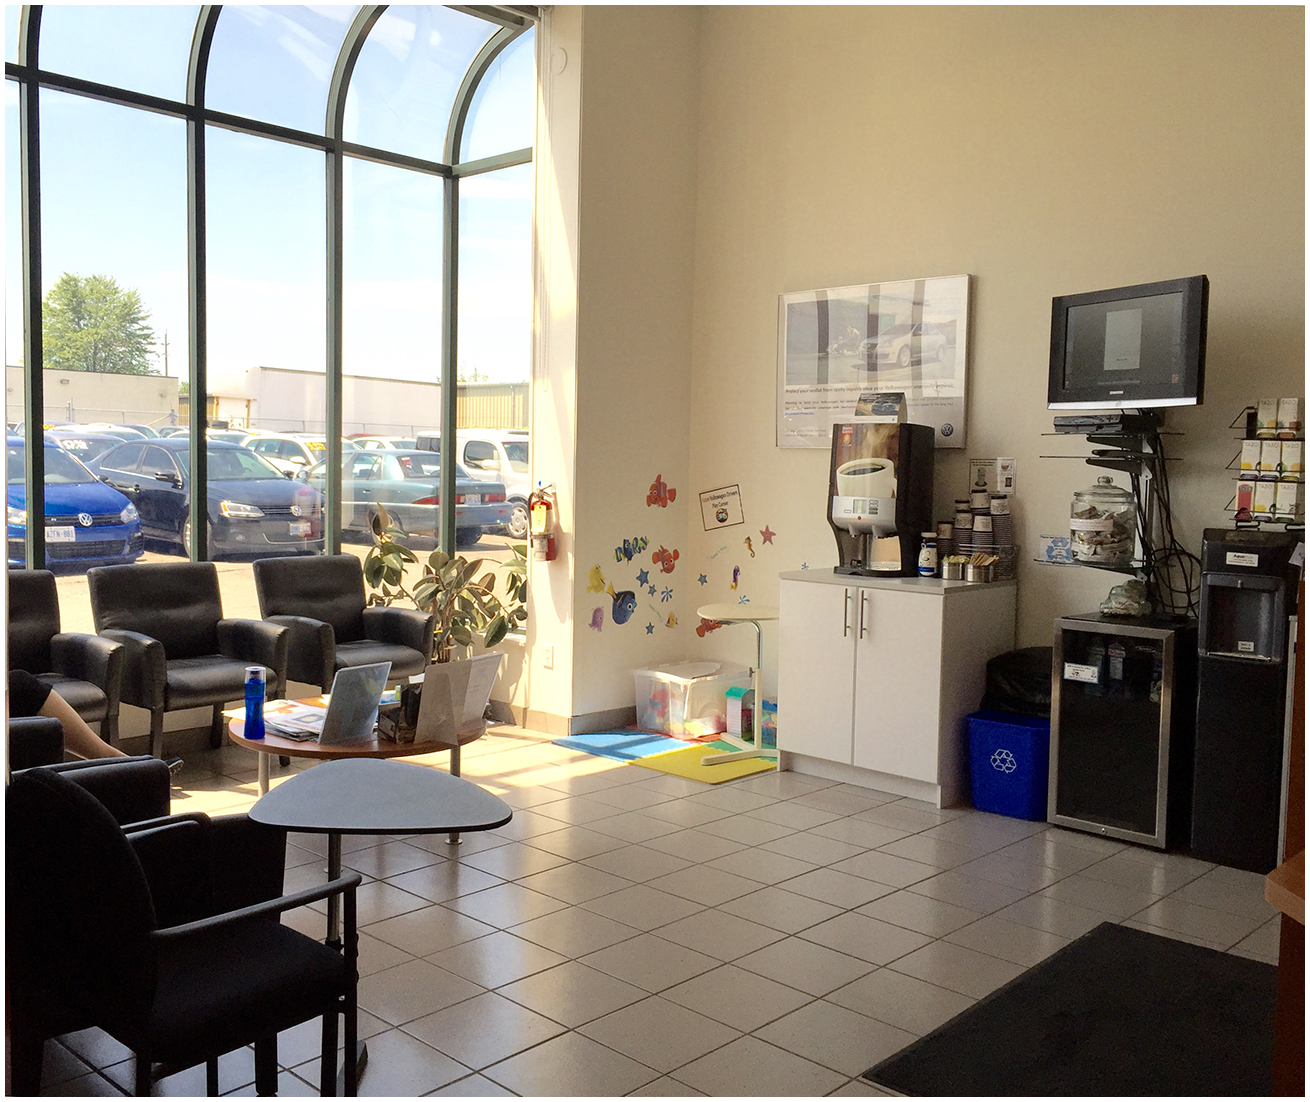 Brantford Volkswagen service waiting area